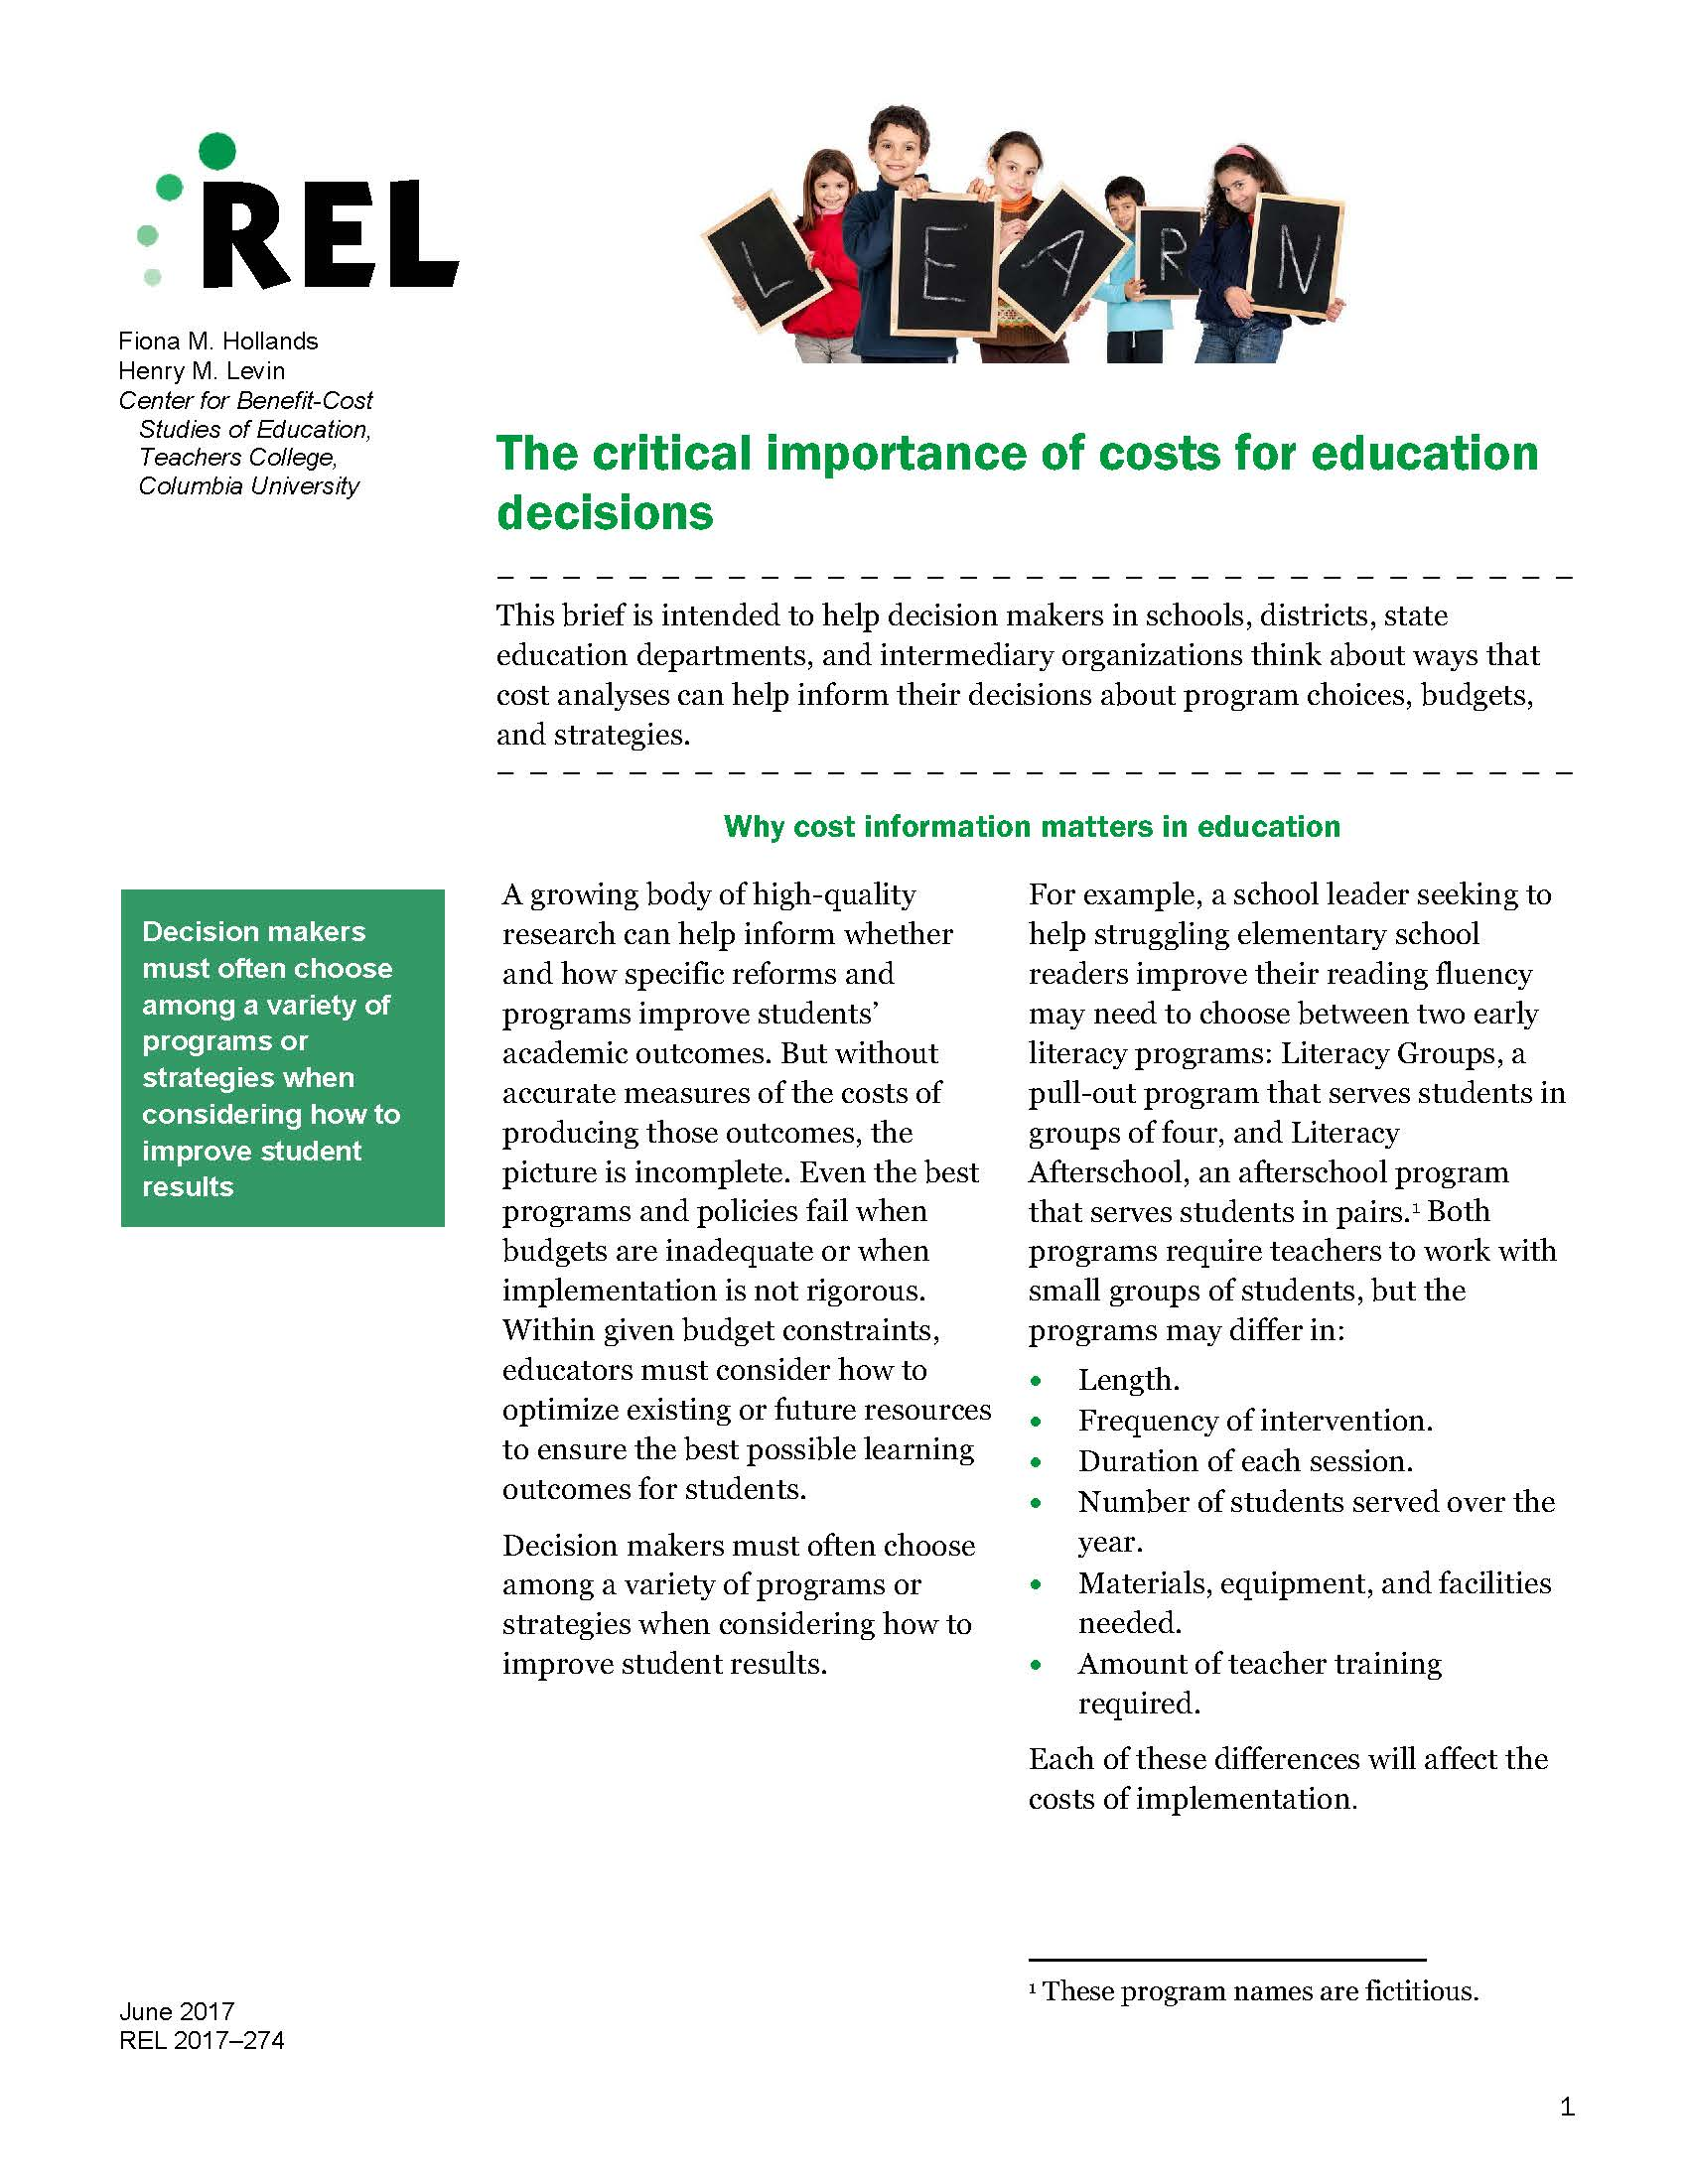 REL: The Critical Importance of Costs for Education Decisions